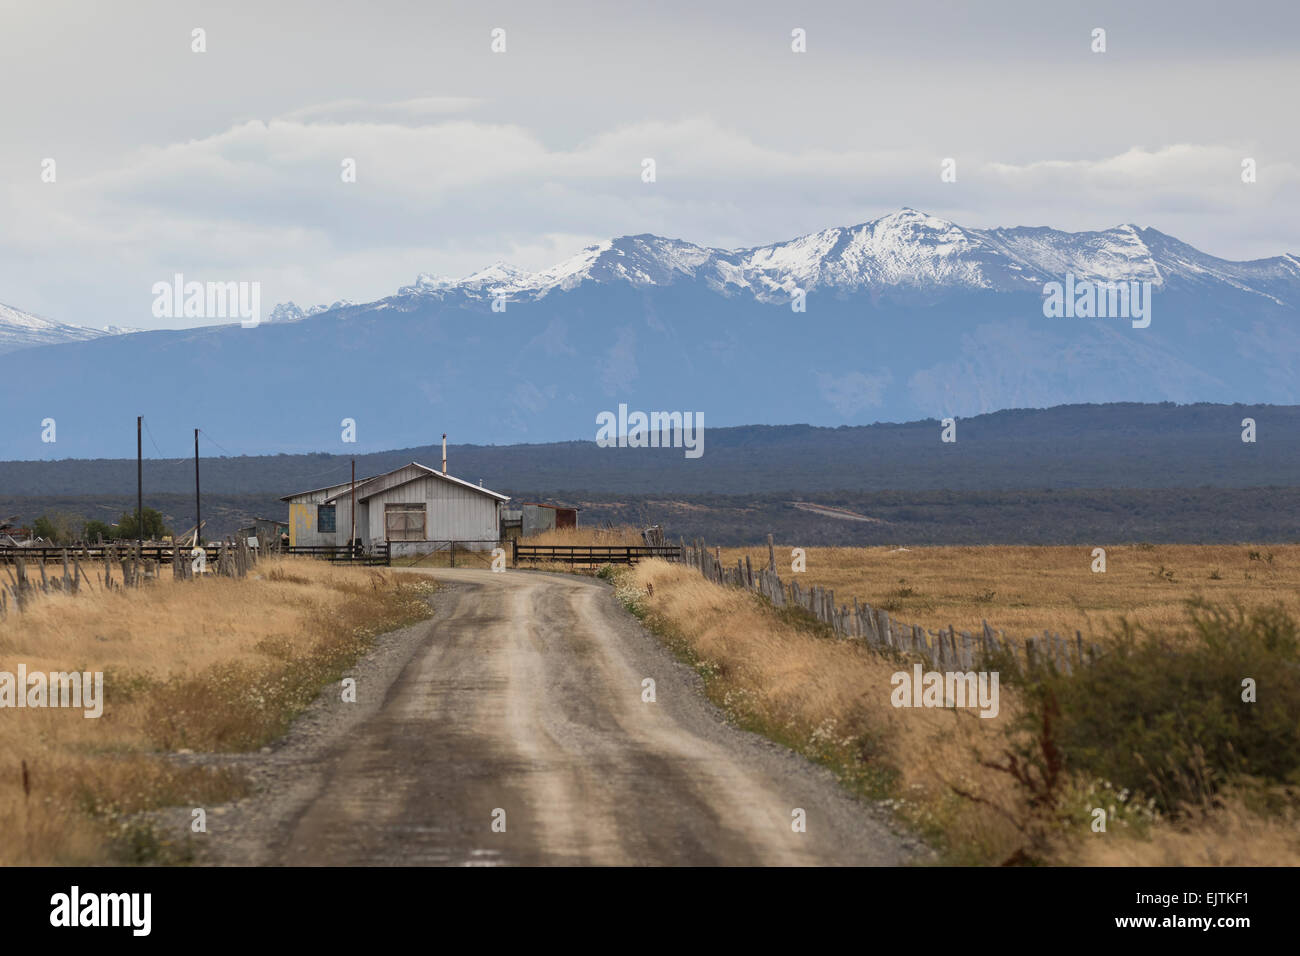 Typical Patagonian farmstead, Chile. - Stock Image